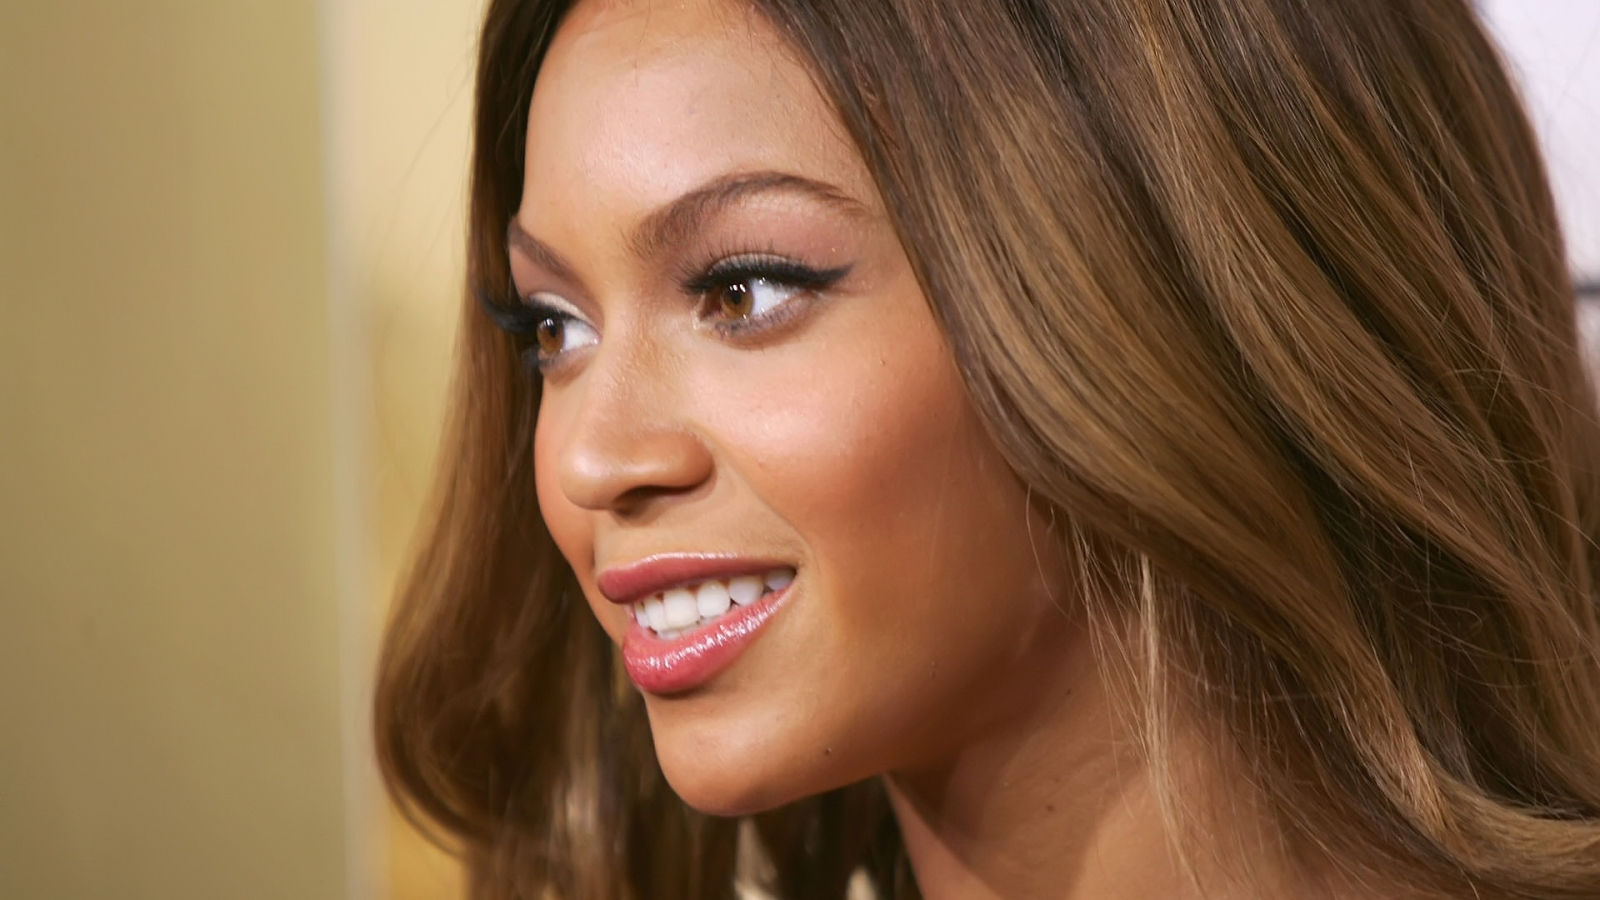 Beyonce Knowles beautiful for 1600 x 900 HDTV resolution